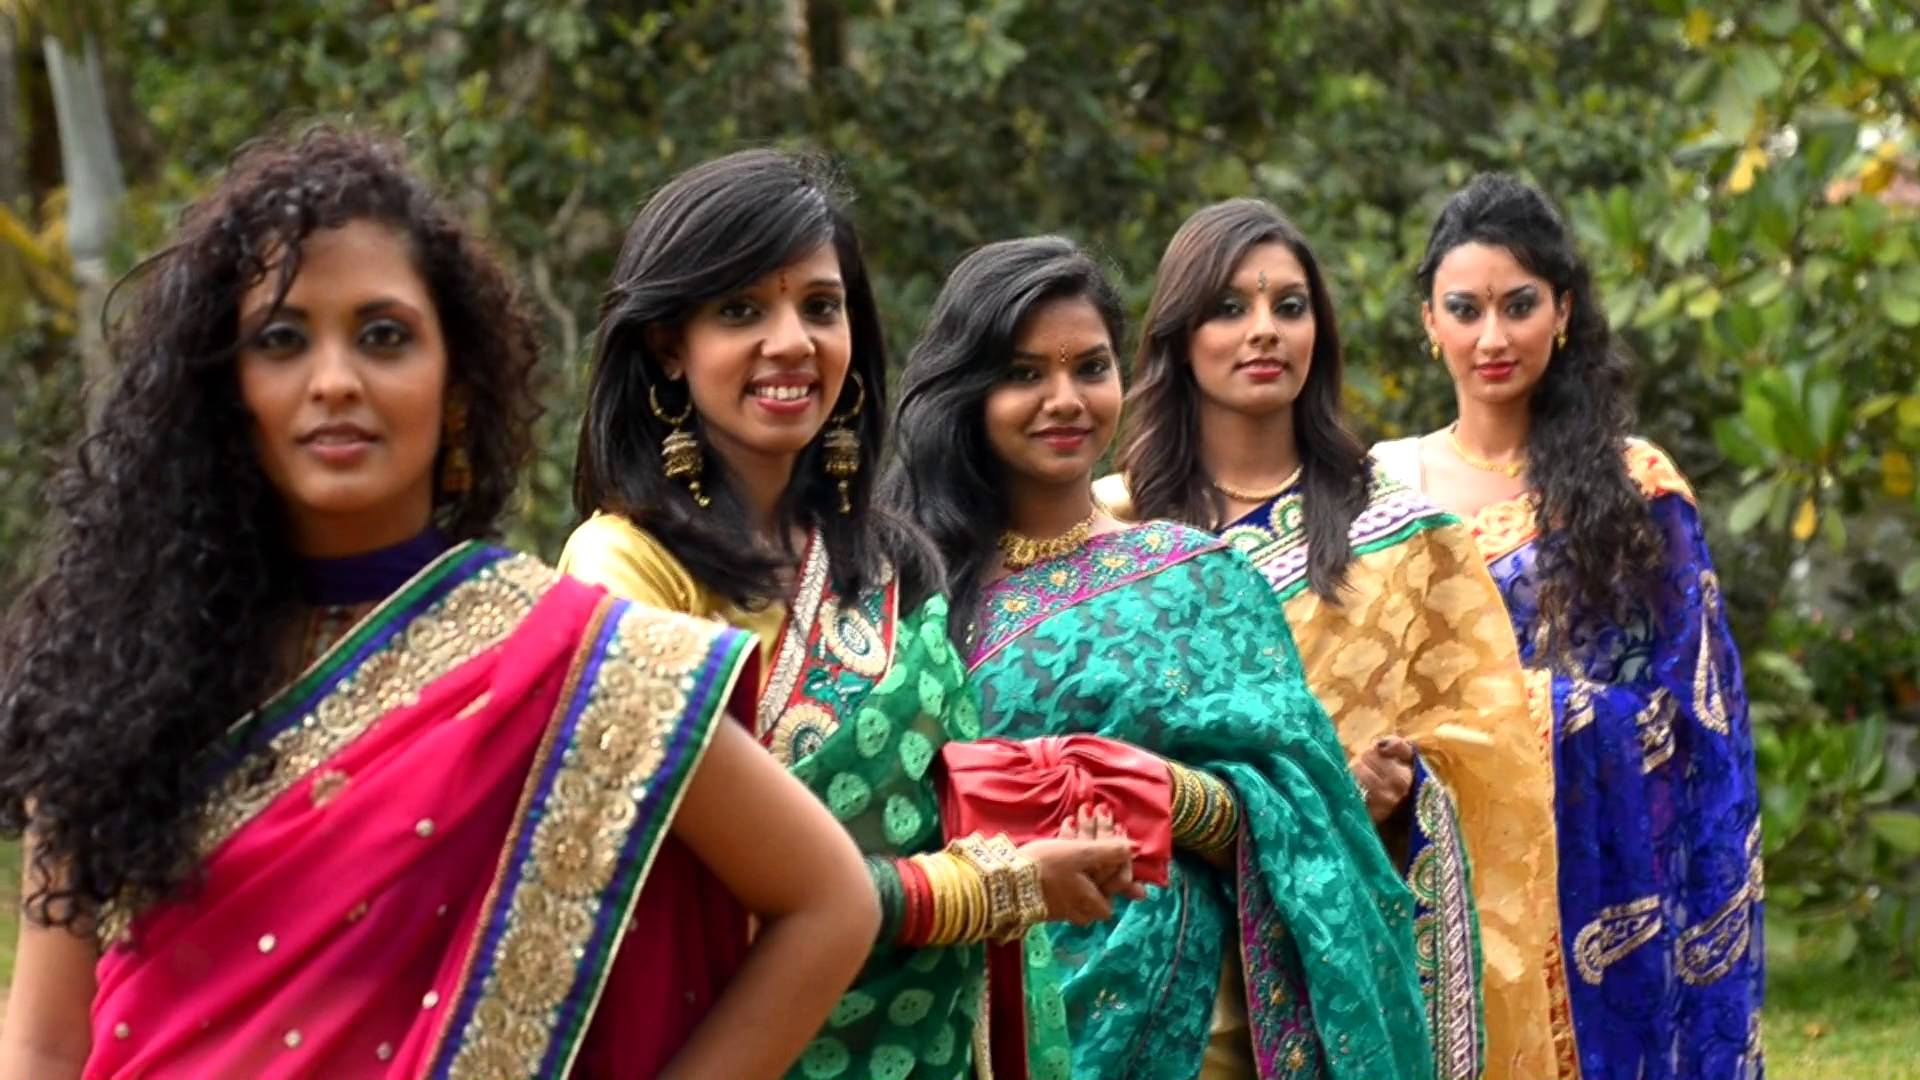 hindu single men in riggins 5 reasons why you should not date indian girls  dating an indian girl is one  its even said among indian men that our women look hotter when born in the west.